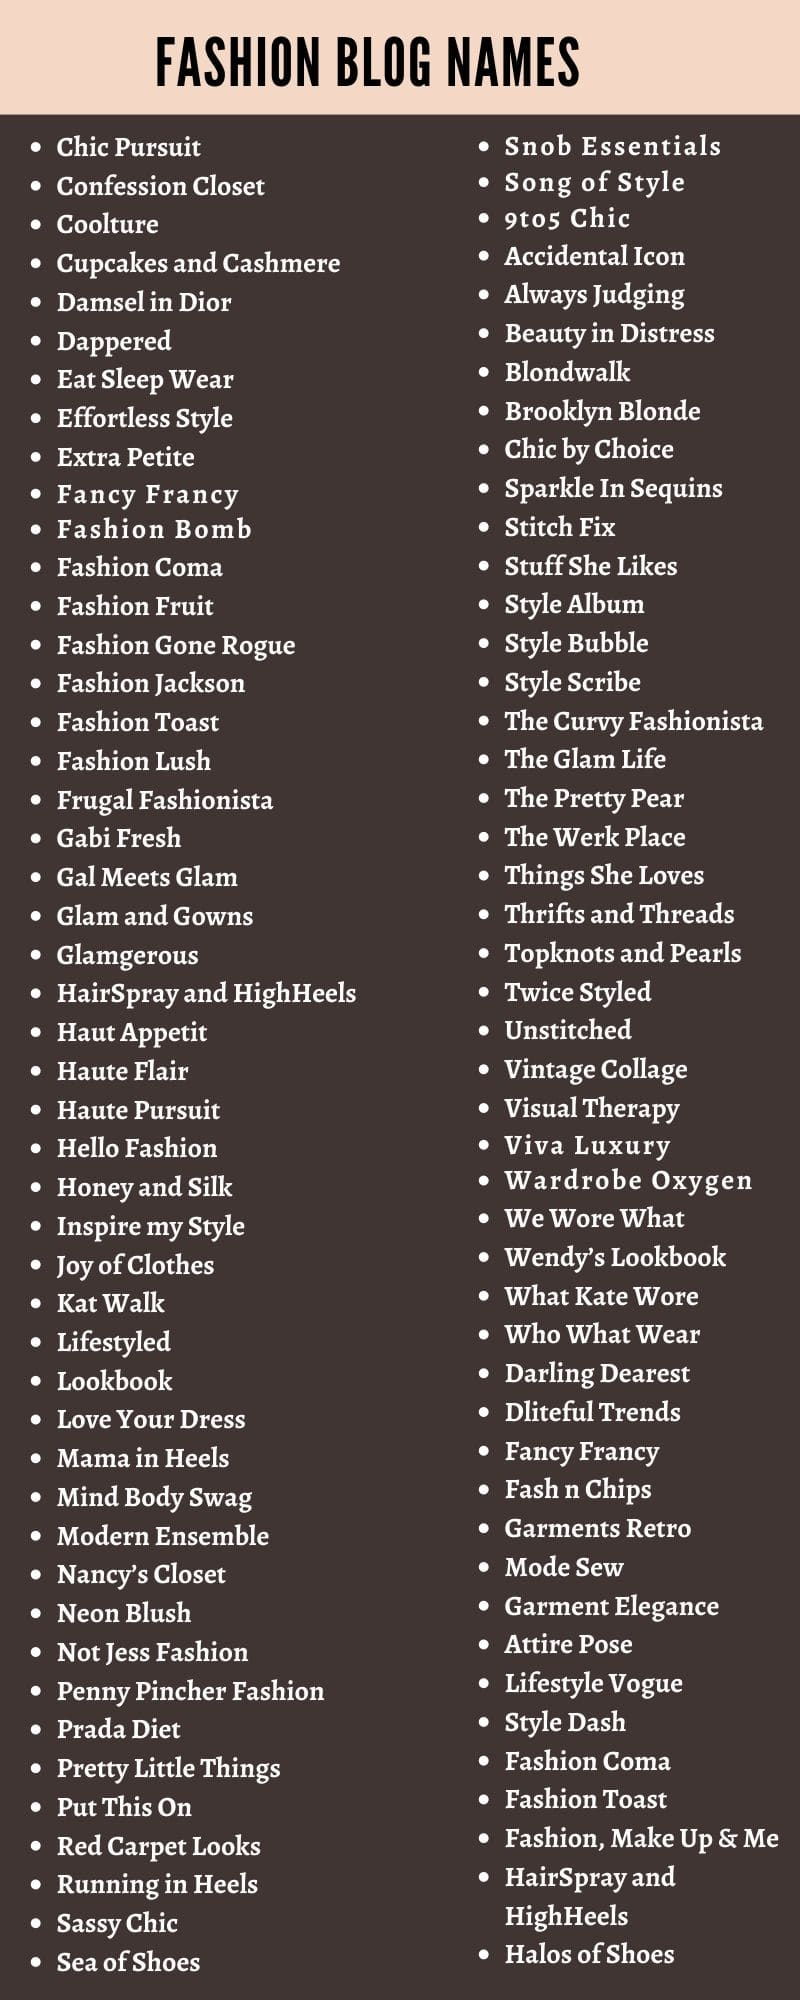 Fashion Blog Names 200 Cute Fashion Blogger Name Ideas Your instagram handle illustrates your identity, and also lets lastly, if your instagram account is going to be a business, try to incorporate these elements: fashion blog names 200 cute fashion